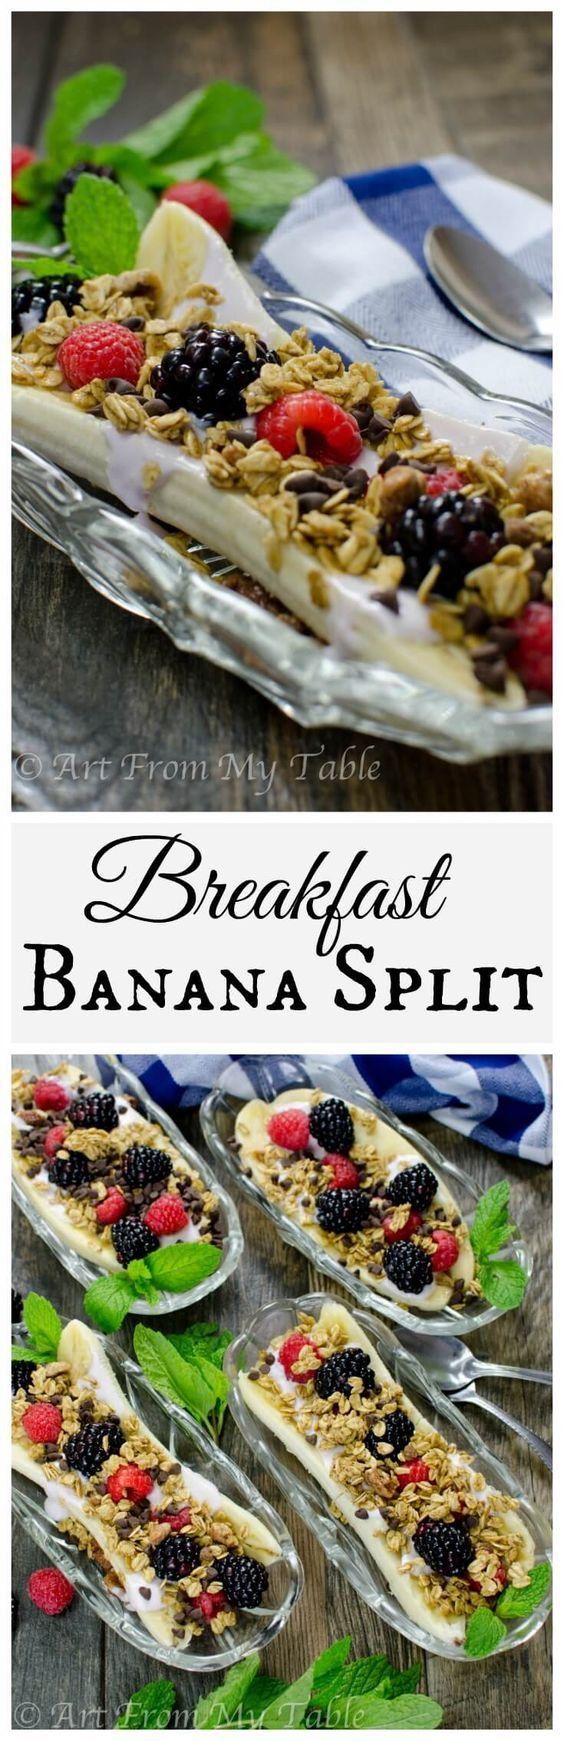 Breakfast Banana Split — banana, Greek yogurt, fresh fruit and granola. To make even healthier, use plain Greek yogurt and add extra fruit. || Healthy breakfast recipe || Vegetarian recipe || 21 Day Fix